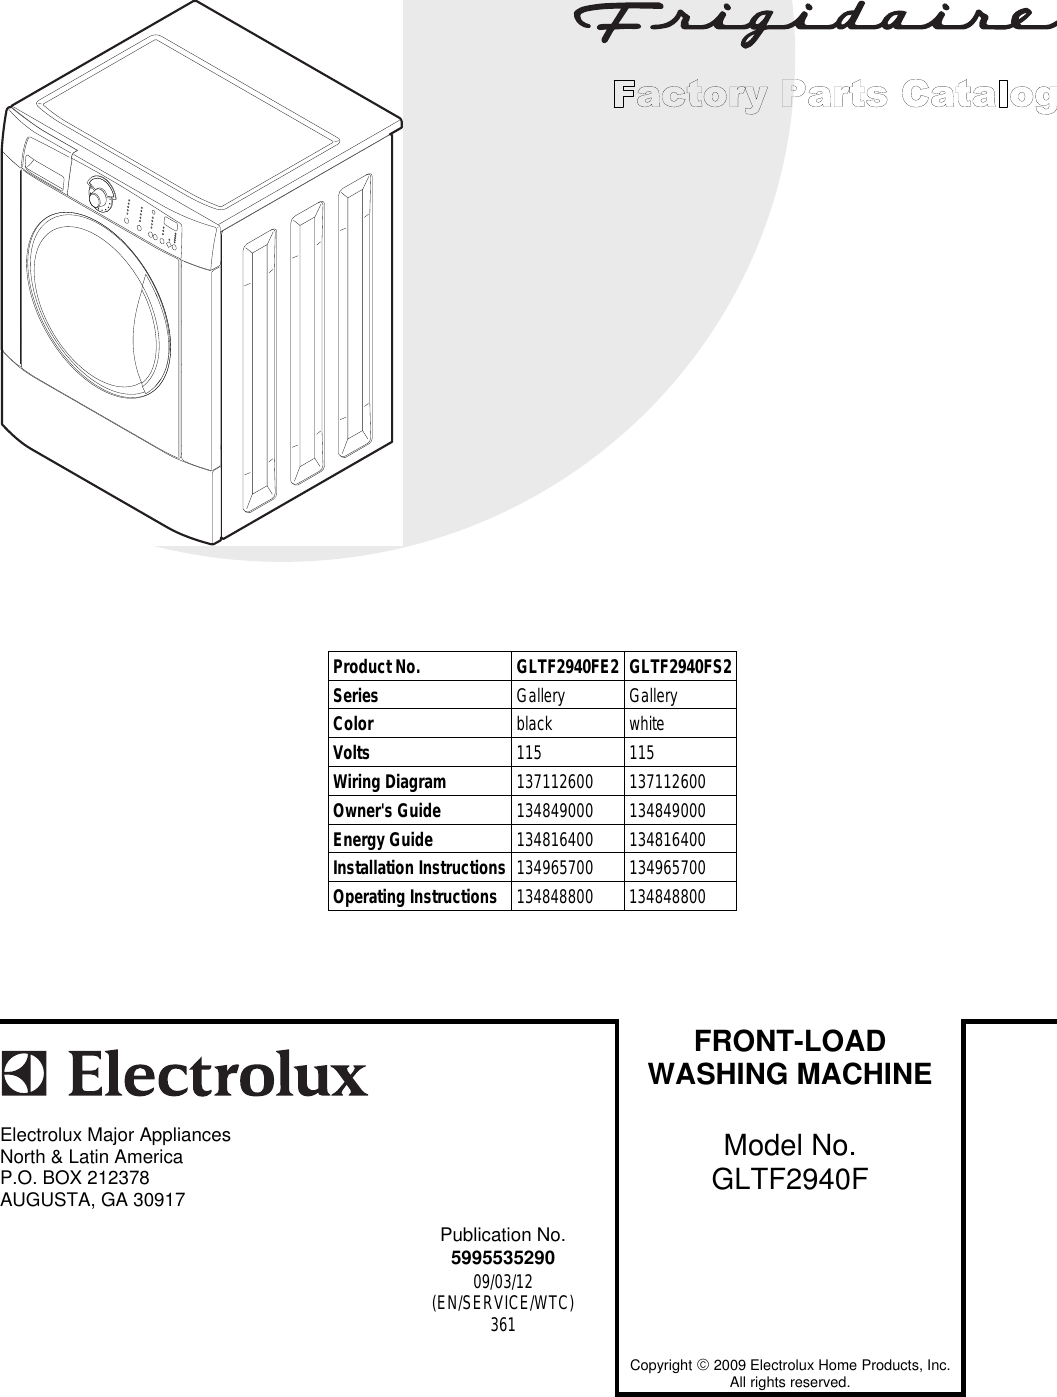 Electrolux Gibson Washer Gltf2940fe2 Users Manual To Begin A Parts Washing Machine Wiring Diagram Catalog Click Load Contents In The Top Menu Bar